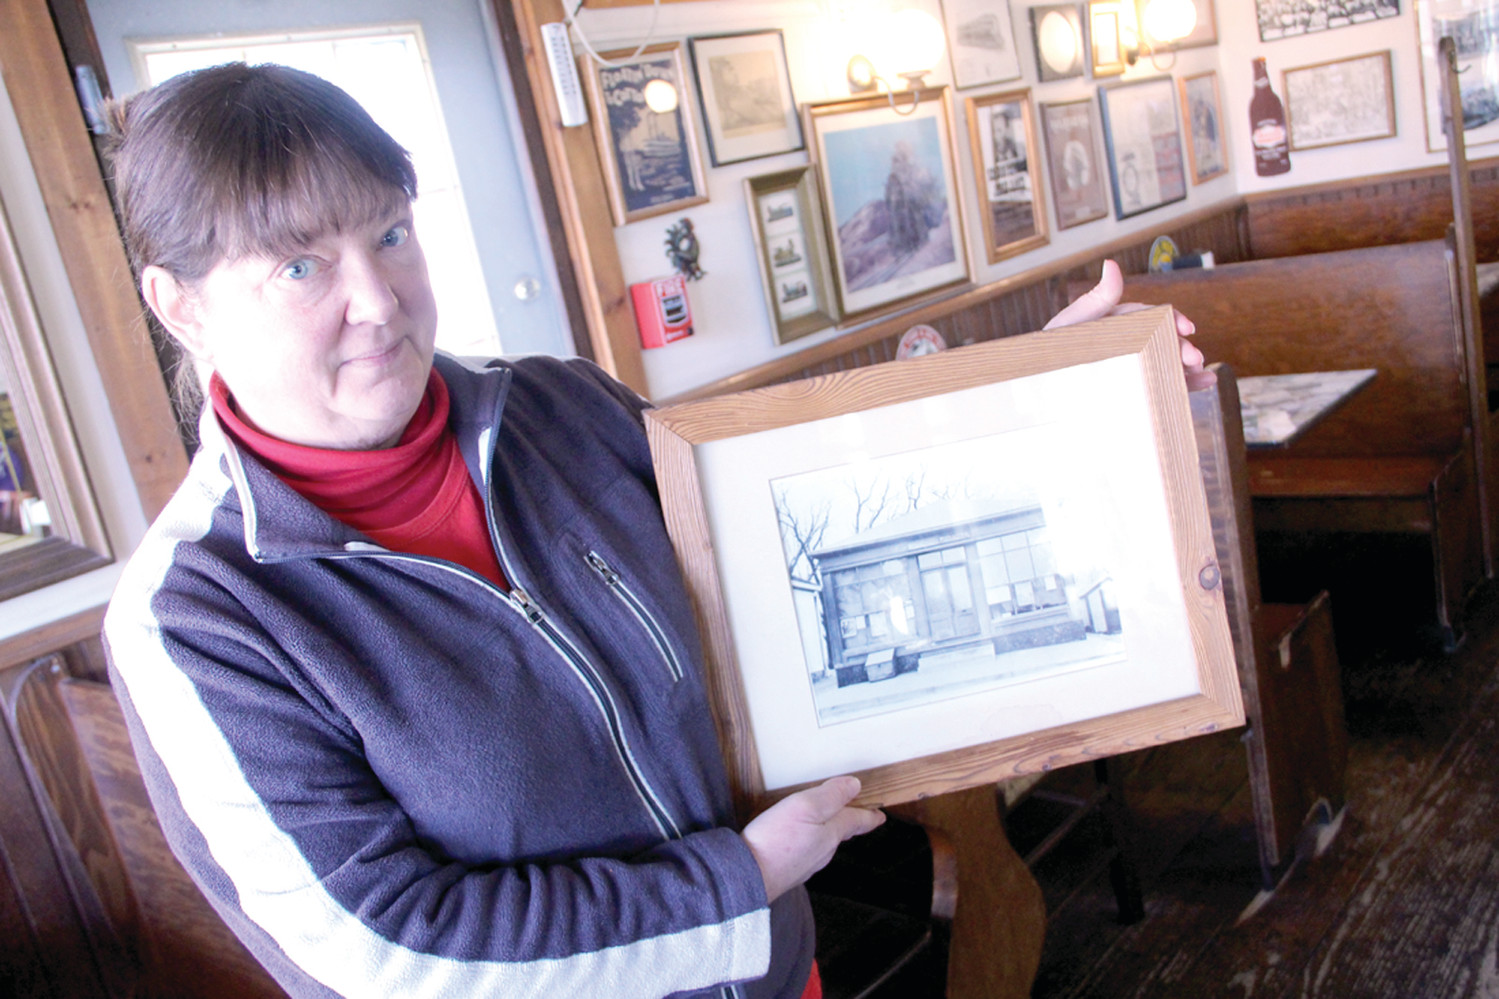 ONCE A POST OFFICE: Kathy Ruginski holds a photo of the Hillsgrove Post Office, now the Sandwich Junction. Kathy and her husband Craig bought the business from her parents in 1990. Ironically, Craig left the business to work for the post office in 2008.